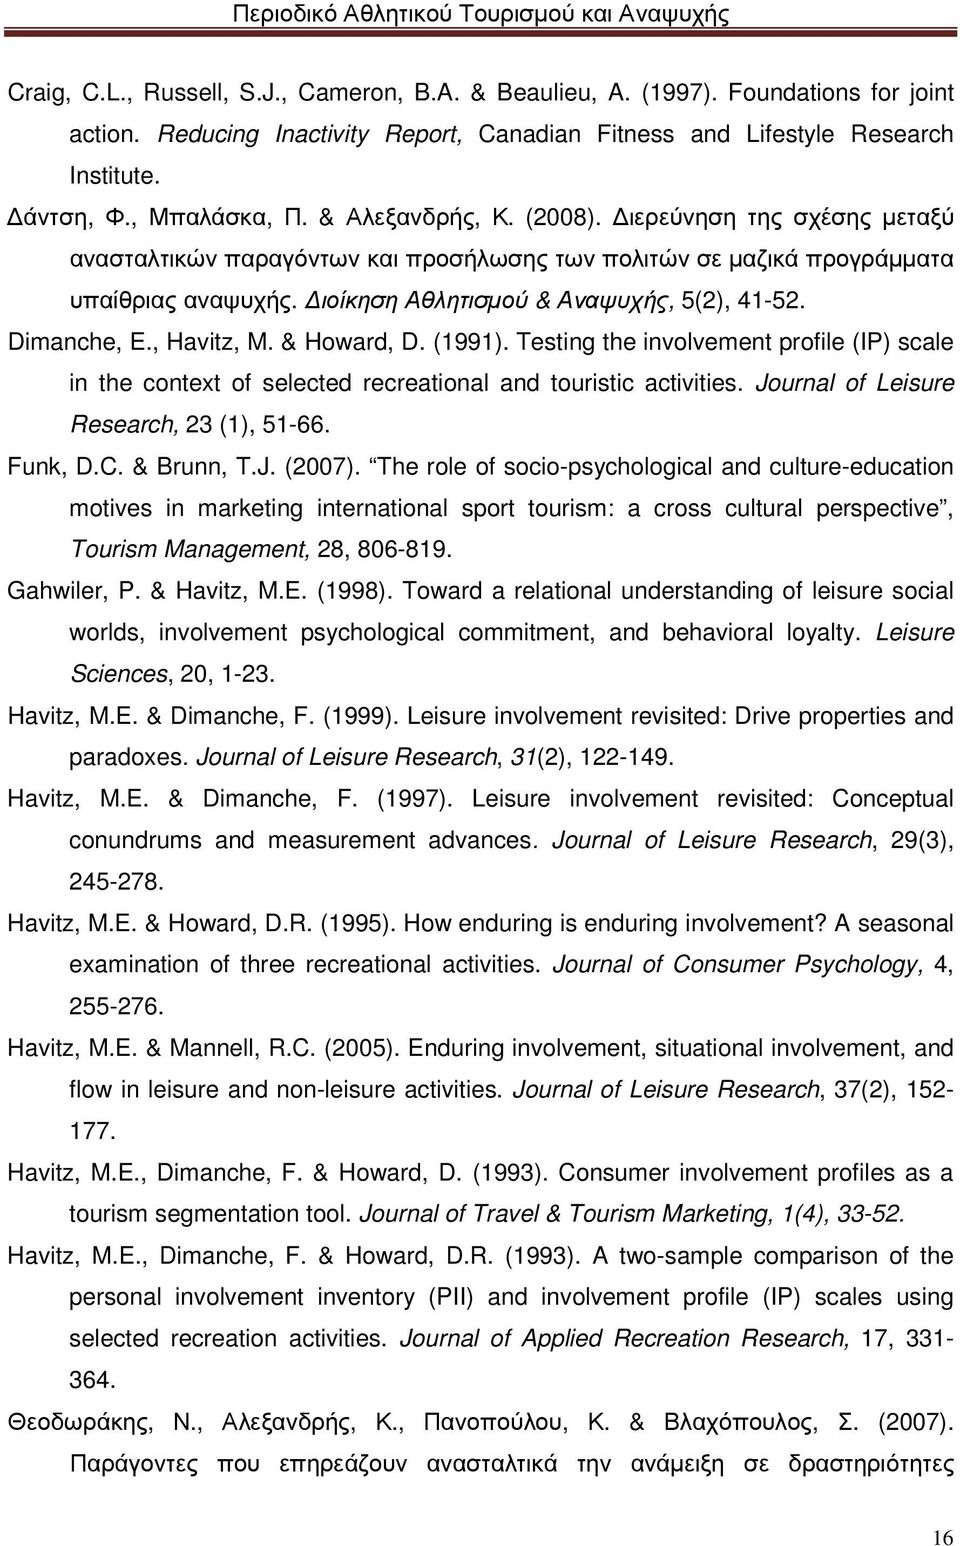 Dimanche, E., Havitz, M. & Howard, D. (1991). Testing the involvement profile (IP) scale in the context of selected recreational and touristic activities. Journal of Leisure Research, 23 (1), 51-66.